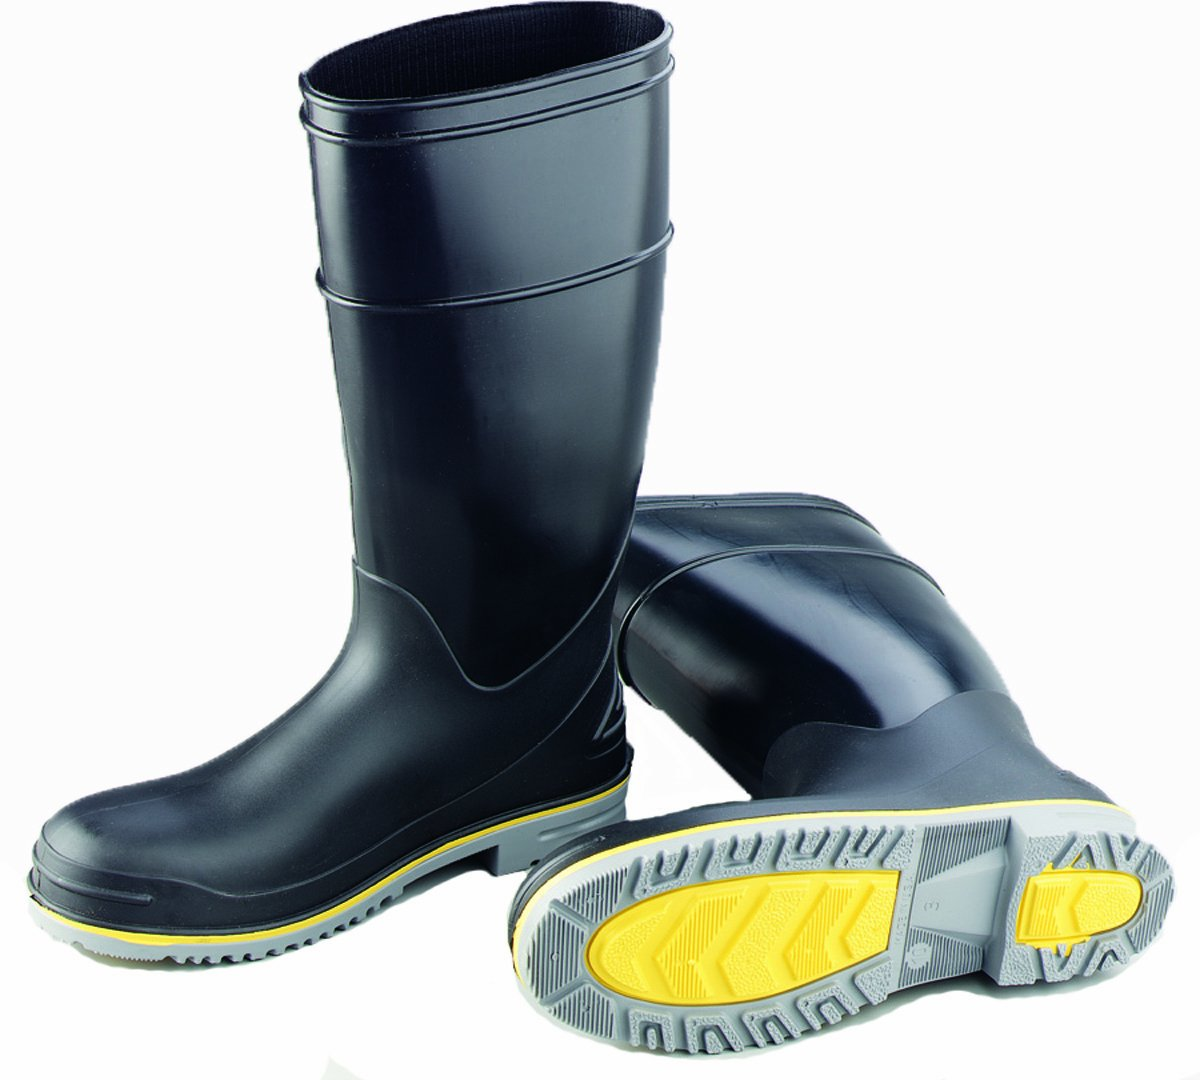 ONGUARD 89908 Polyblend PVC Flex 3 Men's Steel Toe KneeBoots with Power-Lug Outsole, 16'' Height, Size 9